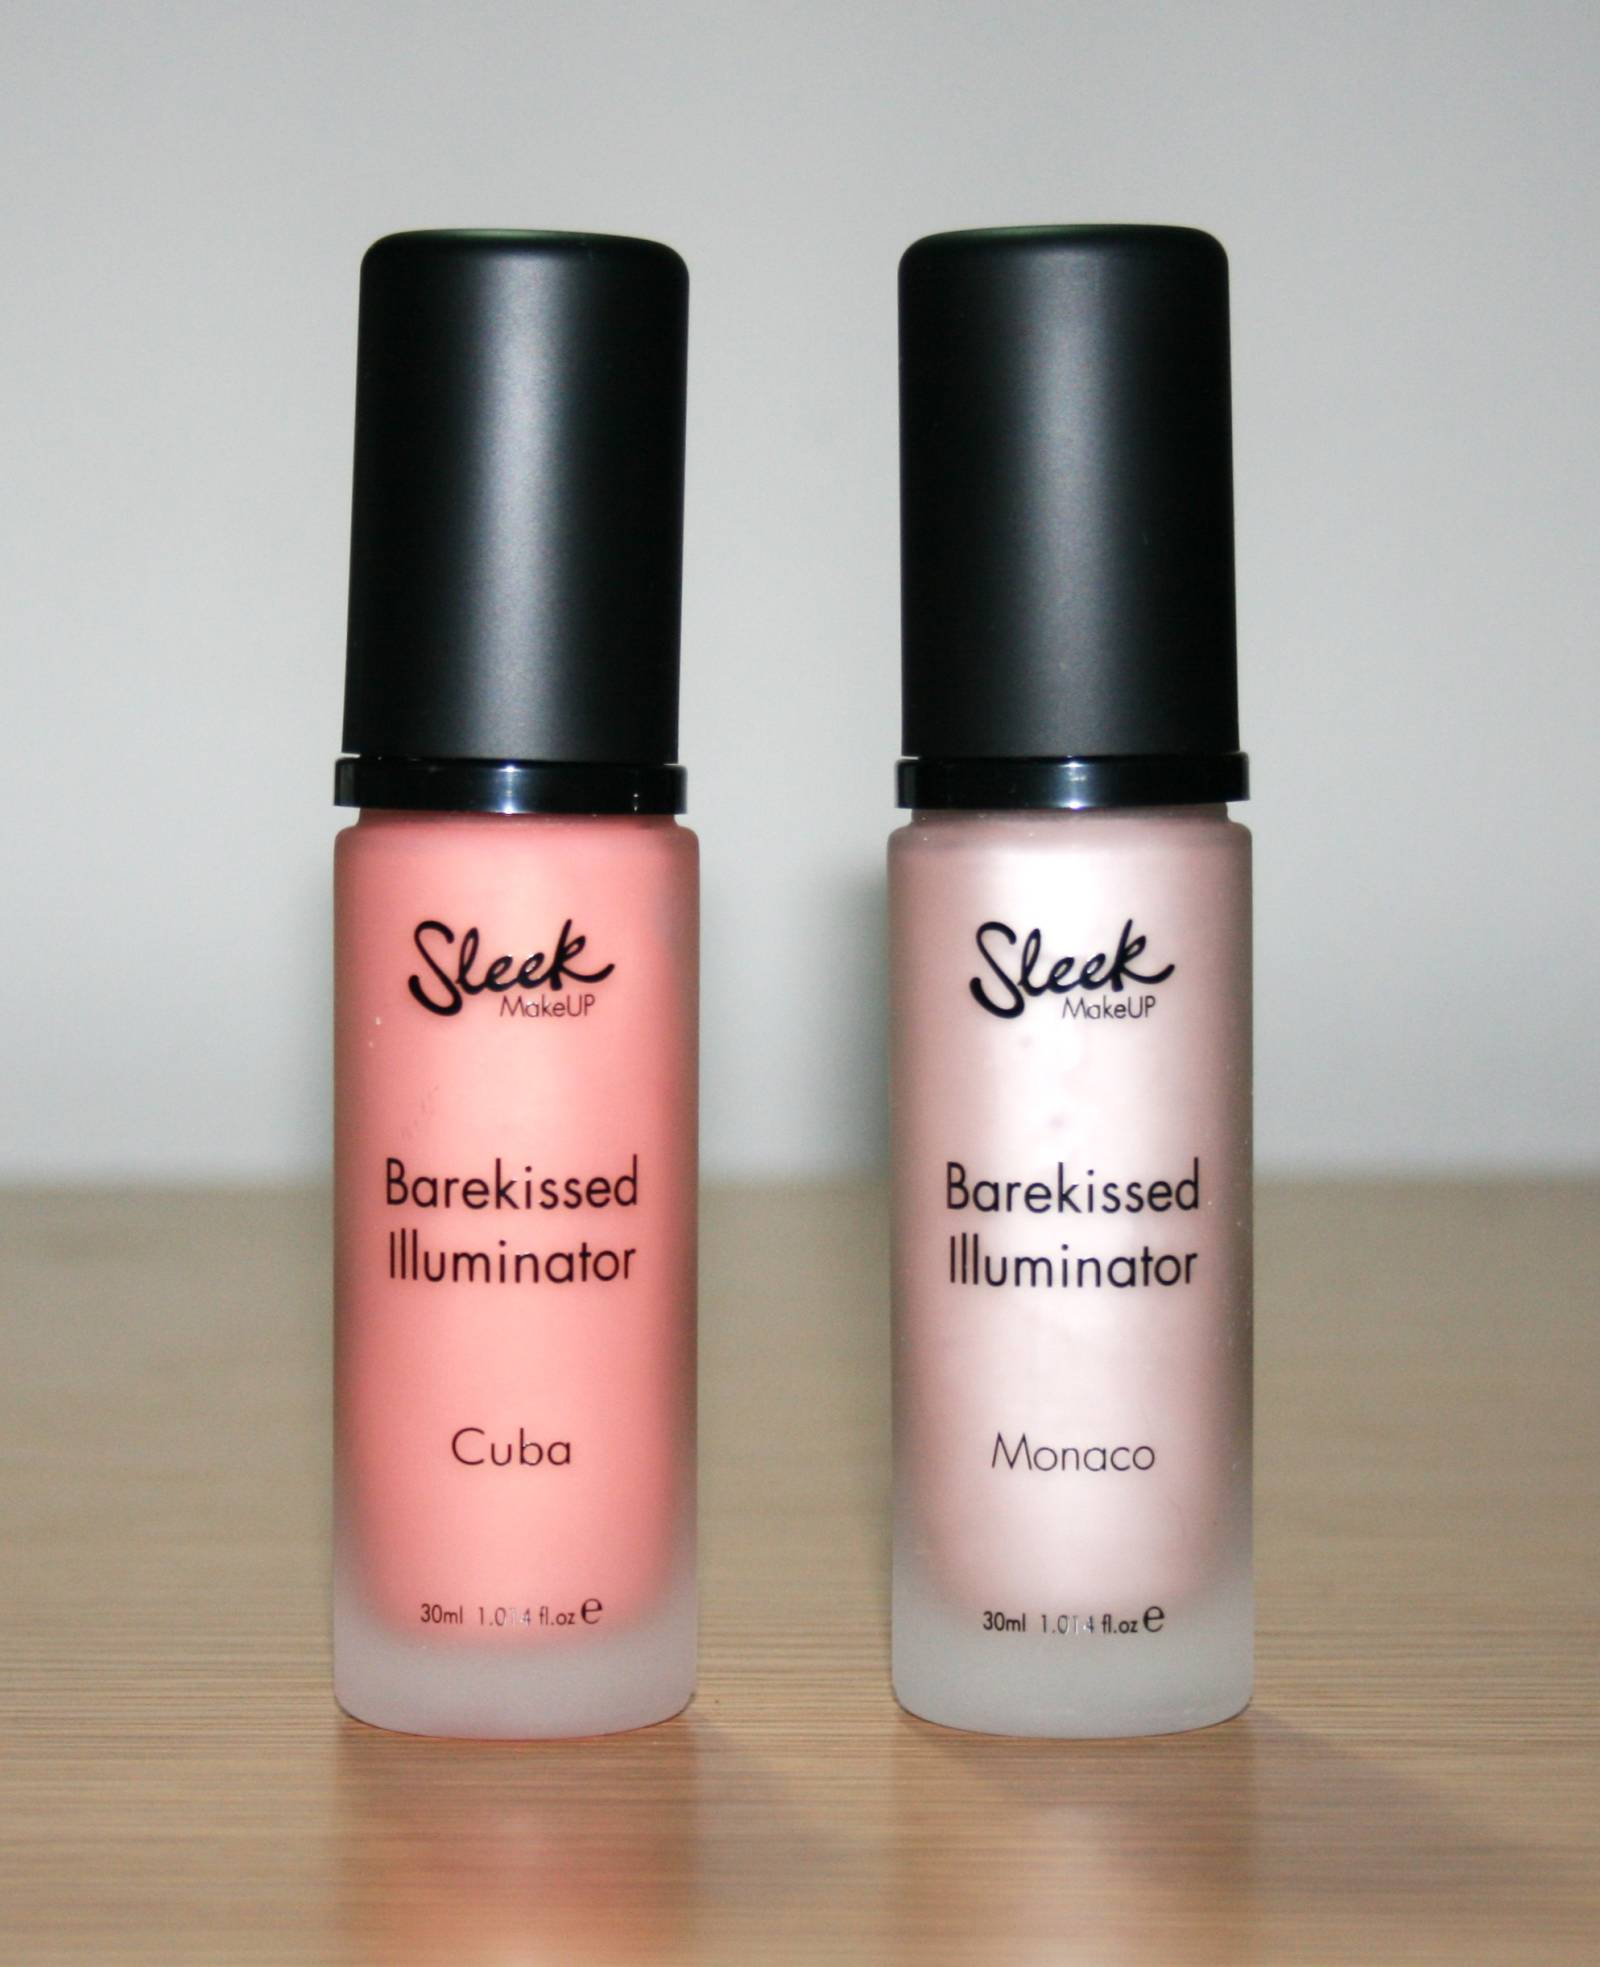 sleek makeup barekissed illuminator in cuba and monaco beauty geek uk